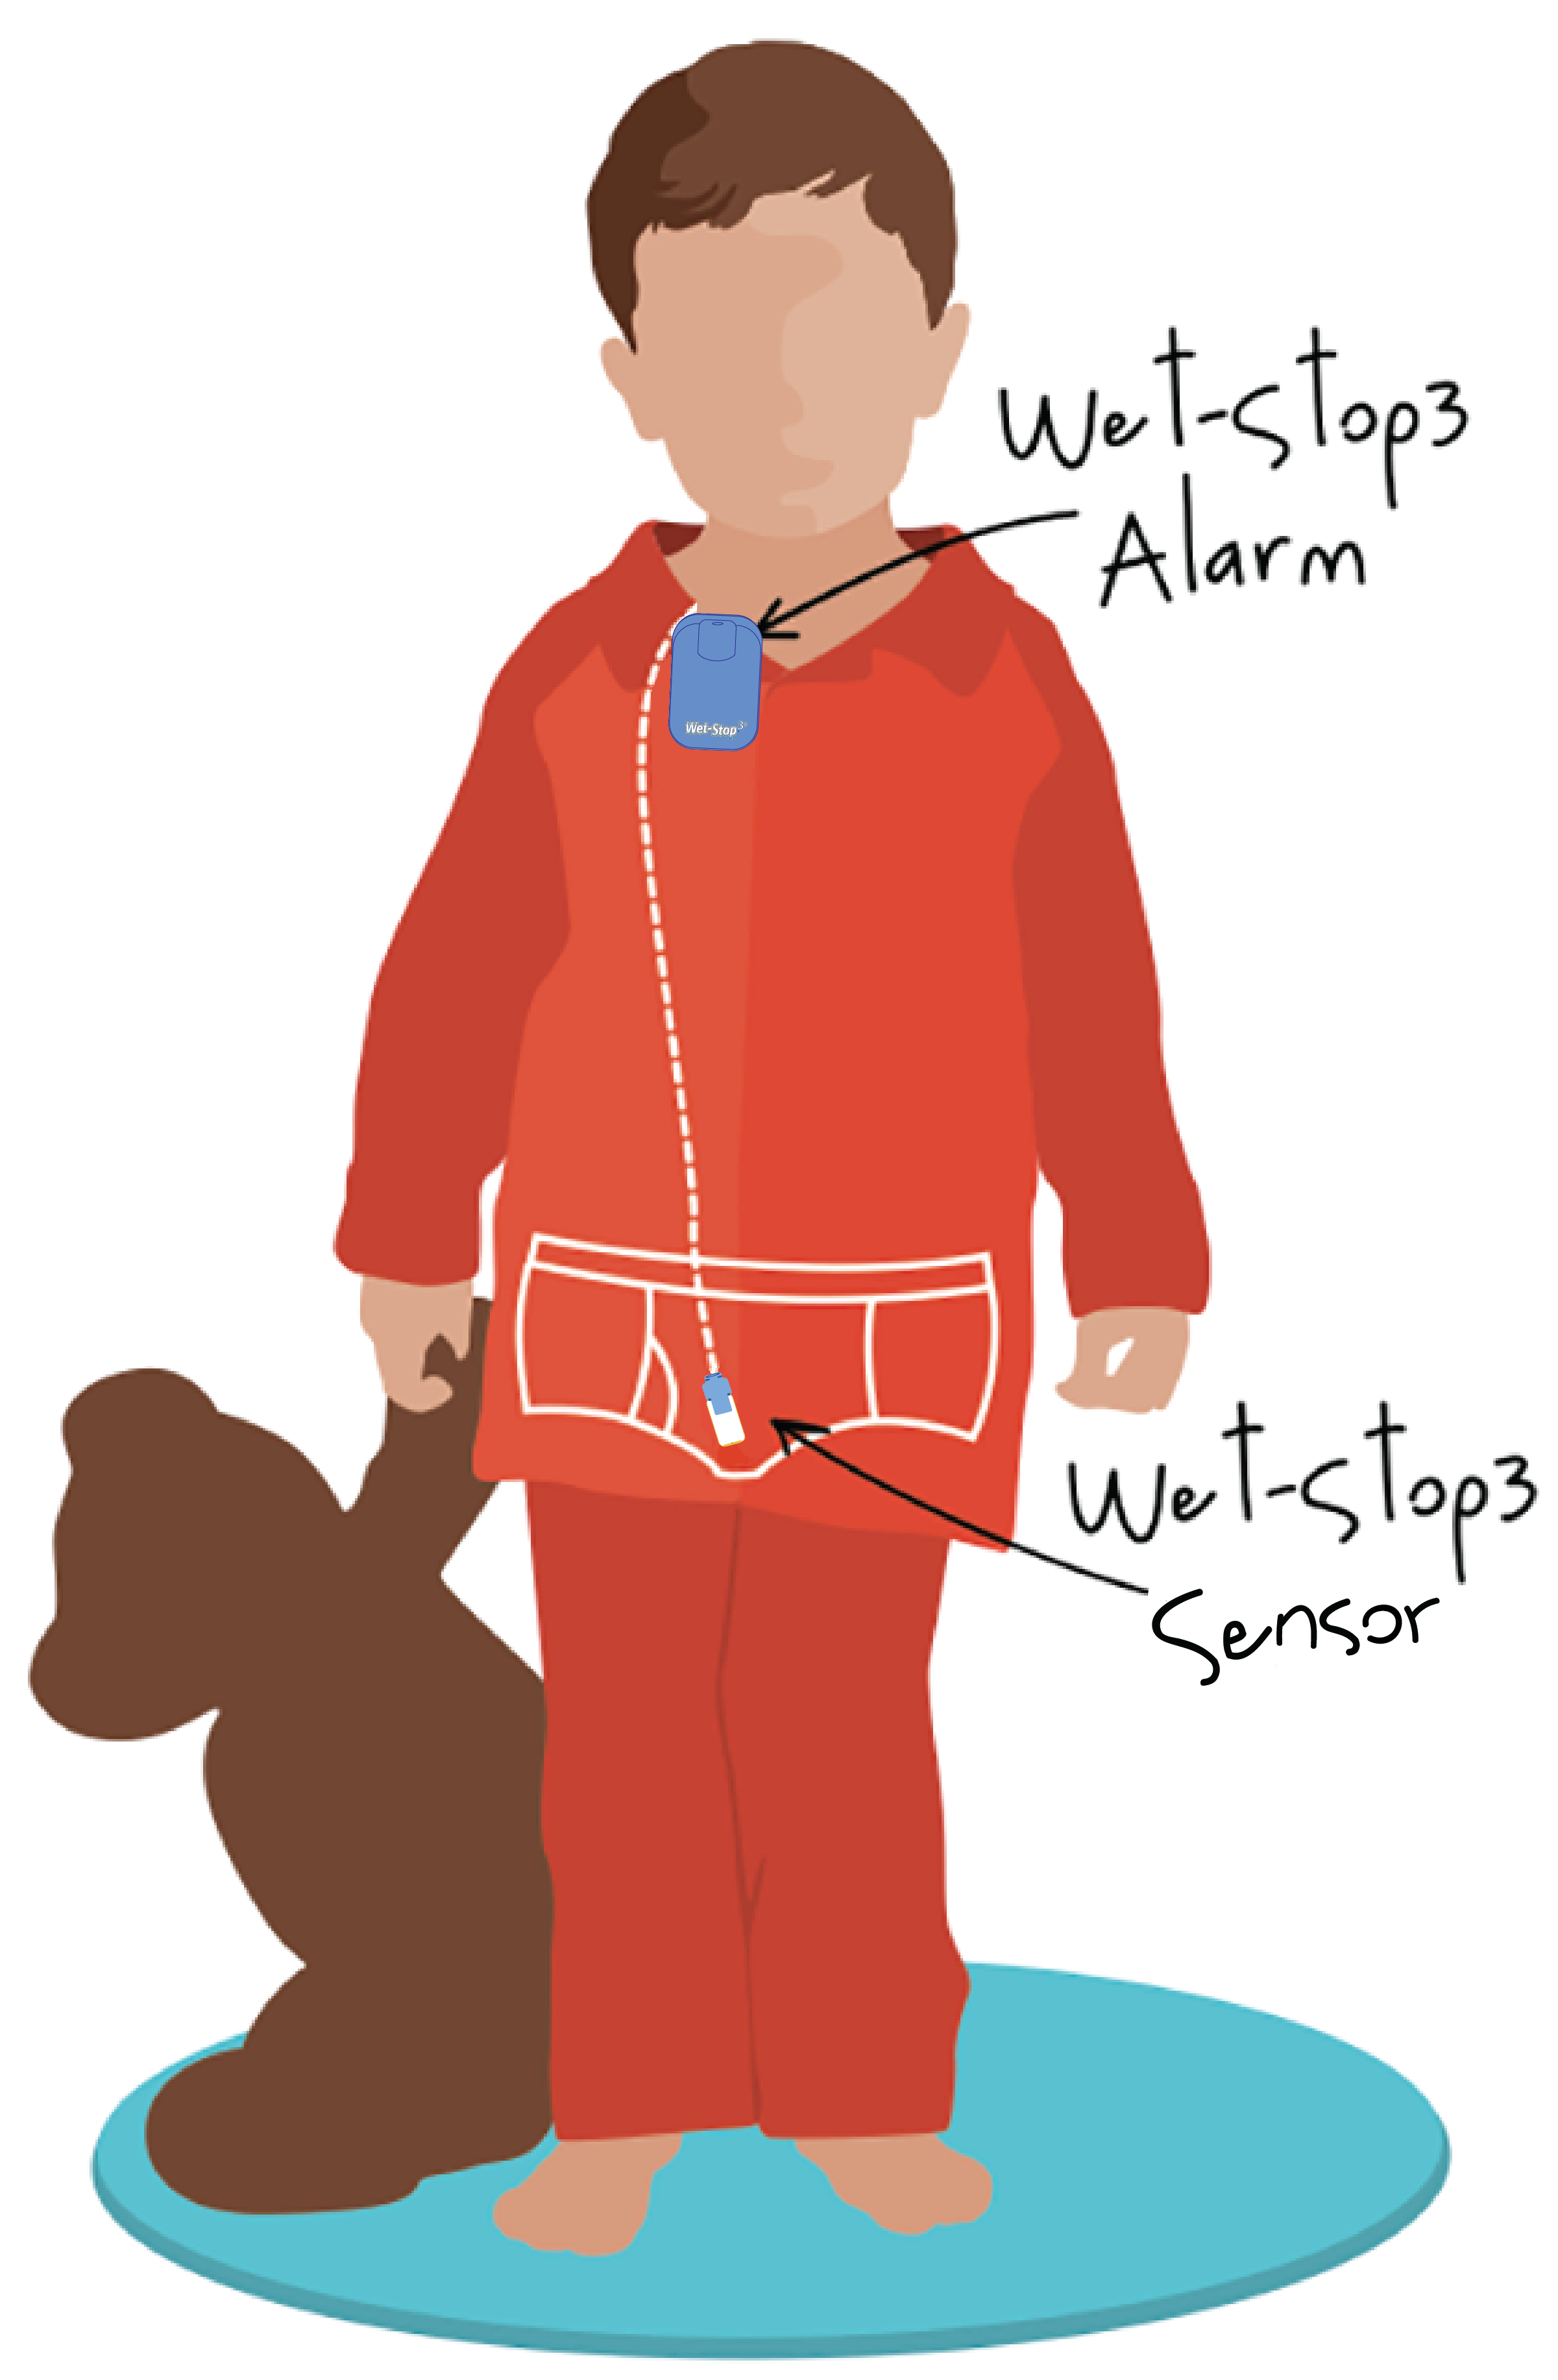 Illustration of proper placement of the Wet-Stop 3+ enuresis alarm (for bedwetting); attach the alarm unit at the neckline, run the cord underneath the pajama top and bottom, and attach on the outside of the underwear, if a boy, inside the fly of underwear, at the point where urine will first appear - not touching the skin.